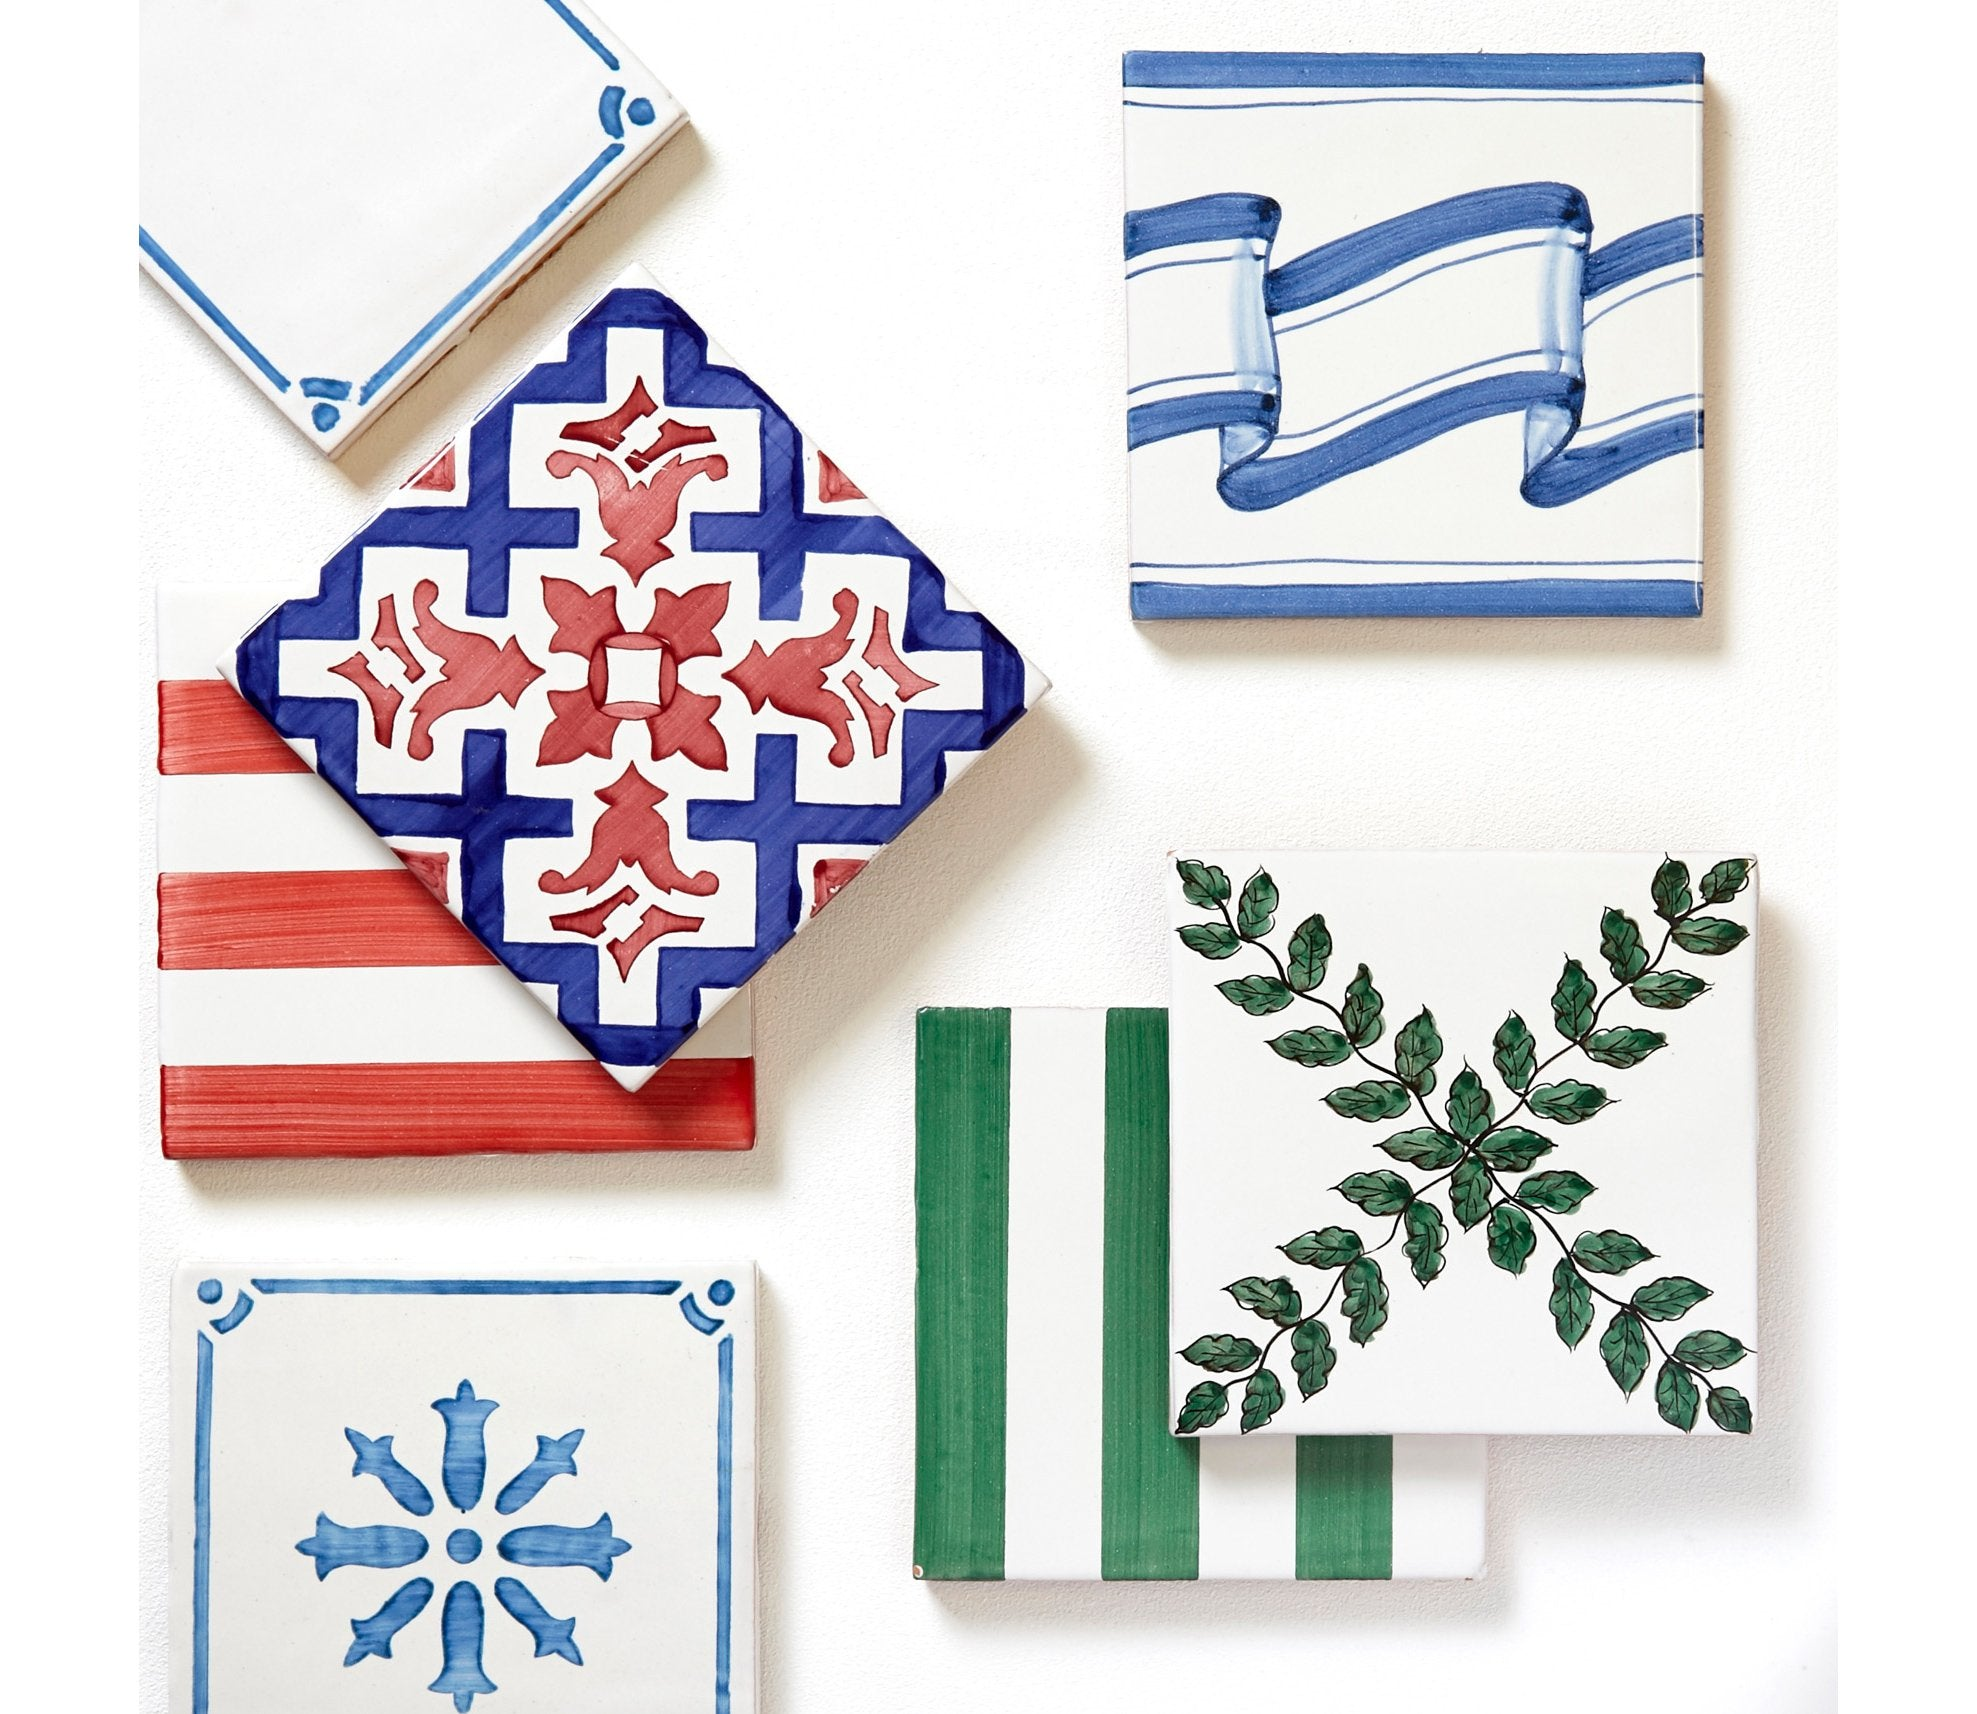 Series S Handpainted Tiles Product Image 1